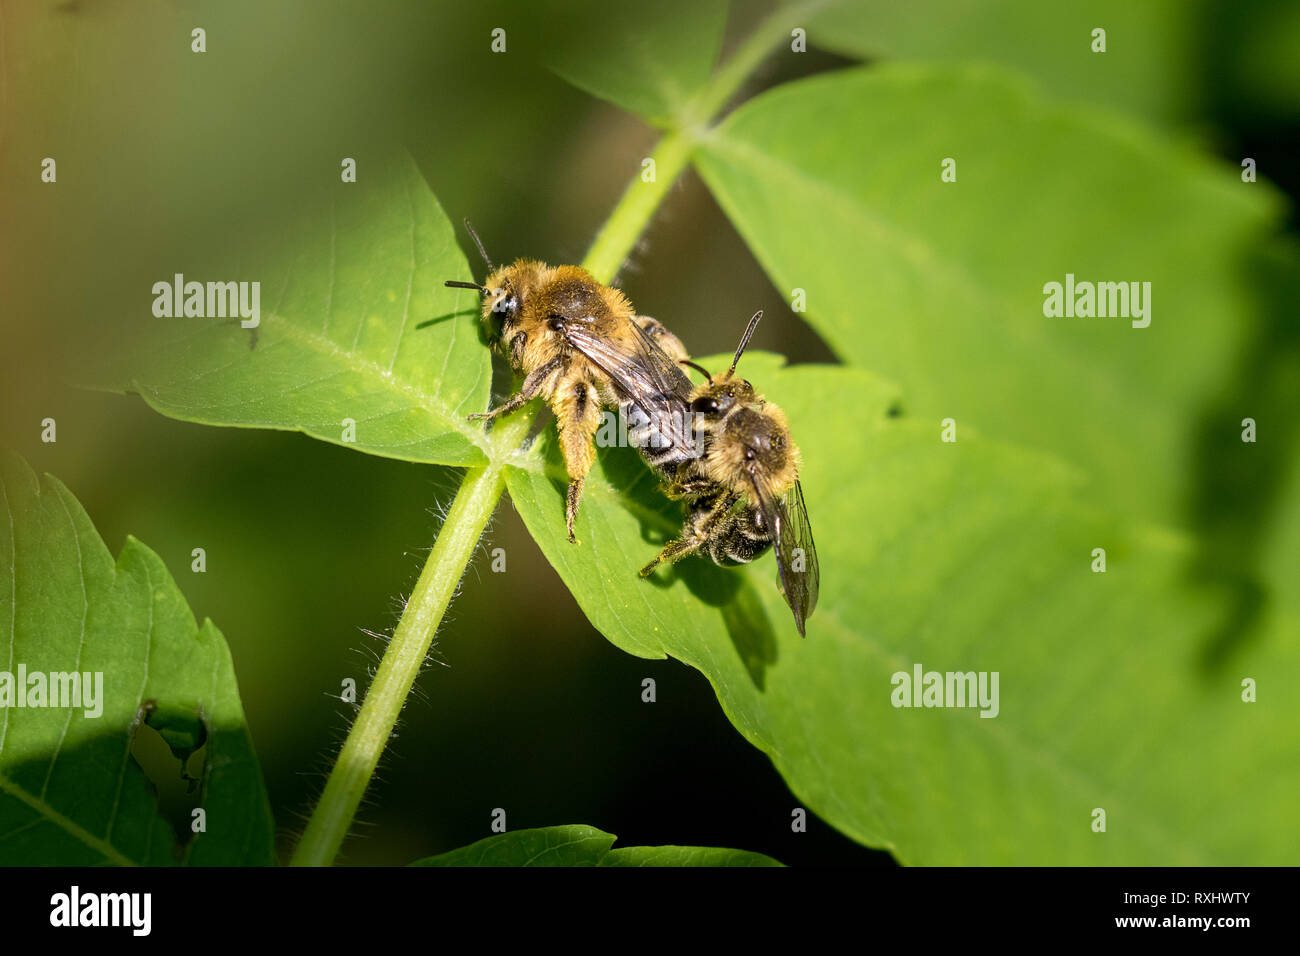 Unequal Cellophane Bees (Colletes inaequalis) mating, Toronto, Ontario, Canada Stock Photo